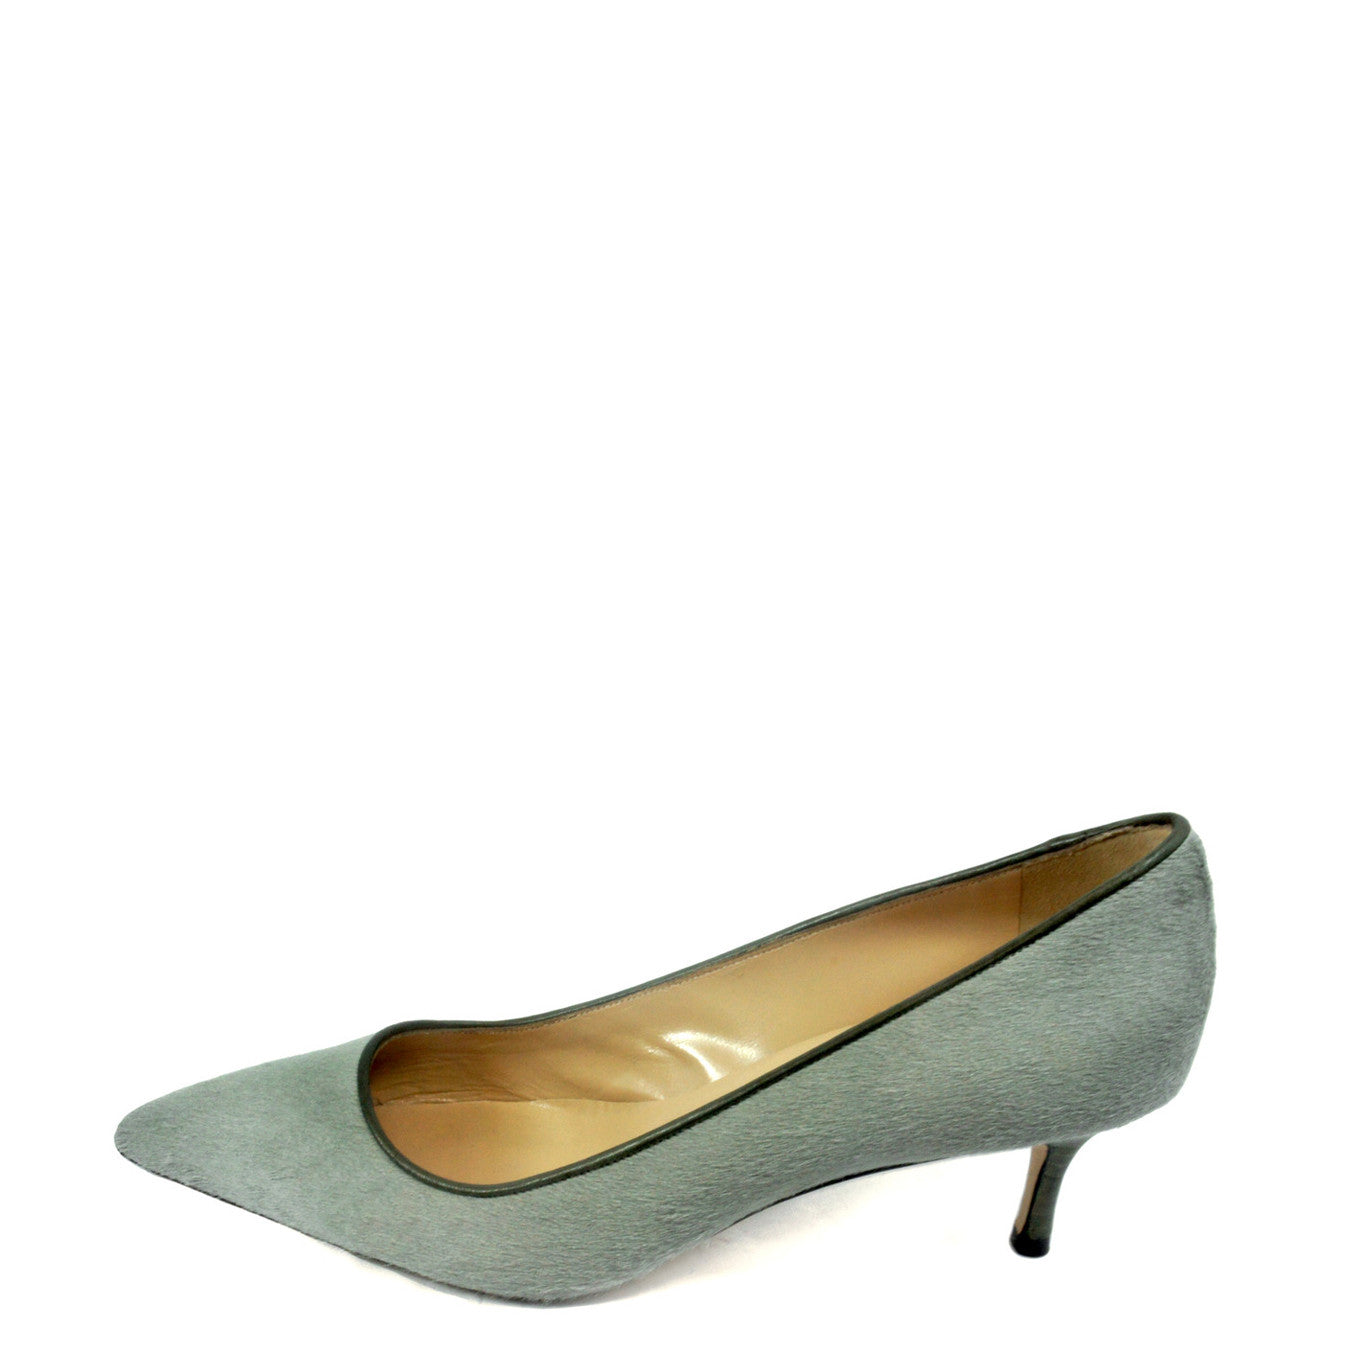 Manolo Blahnik Grey Calfhair Pumps (Size 39.5) - Encore Consignment - 8